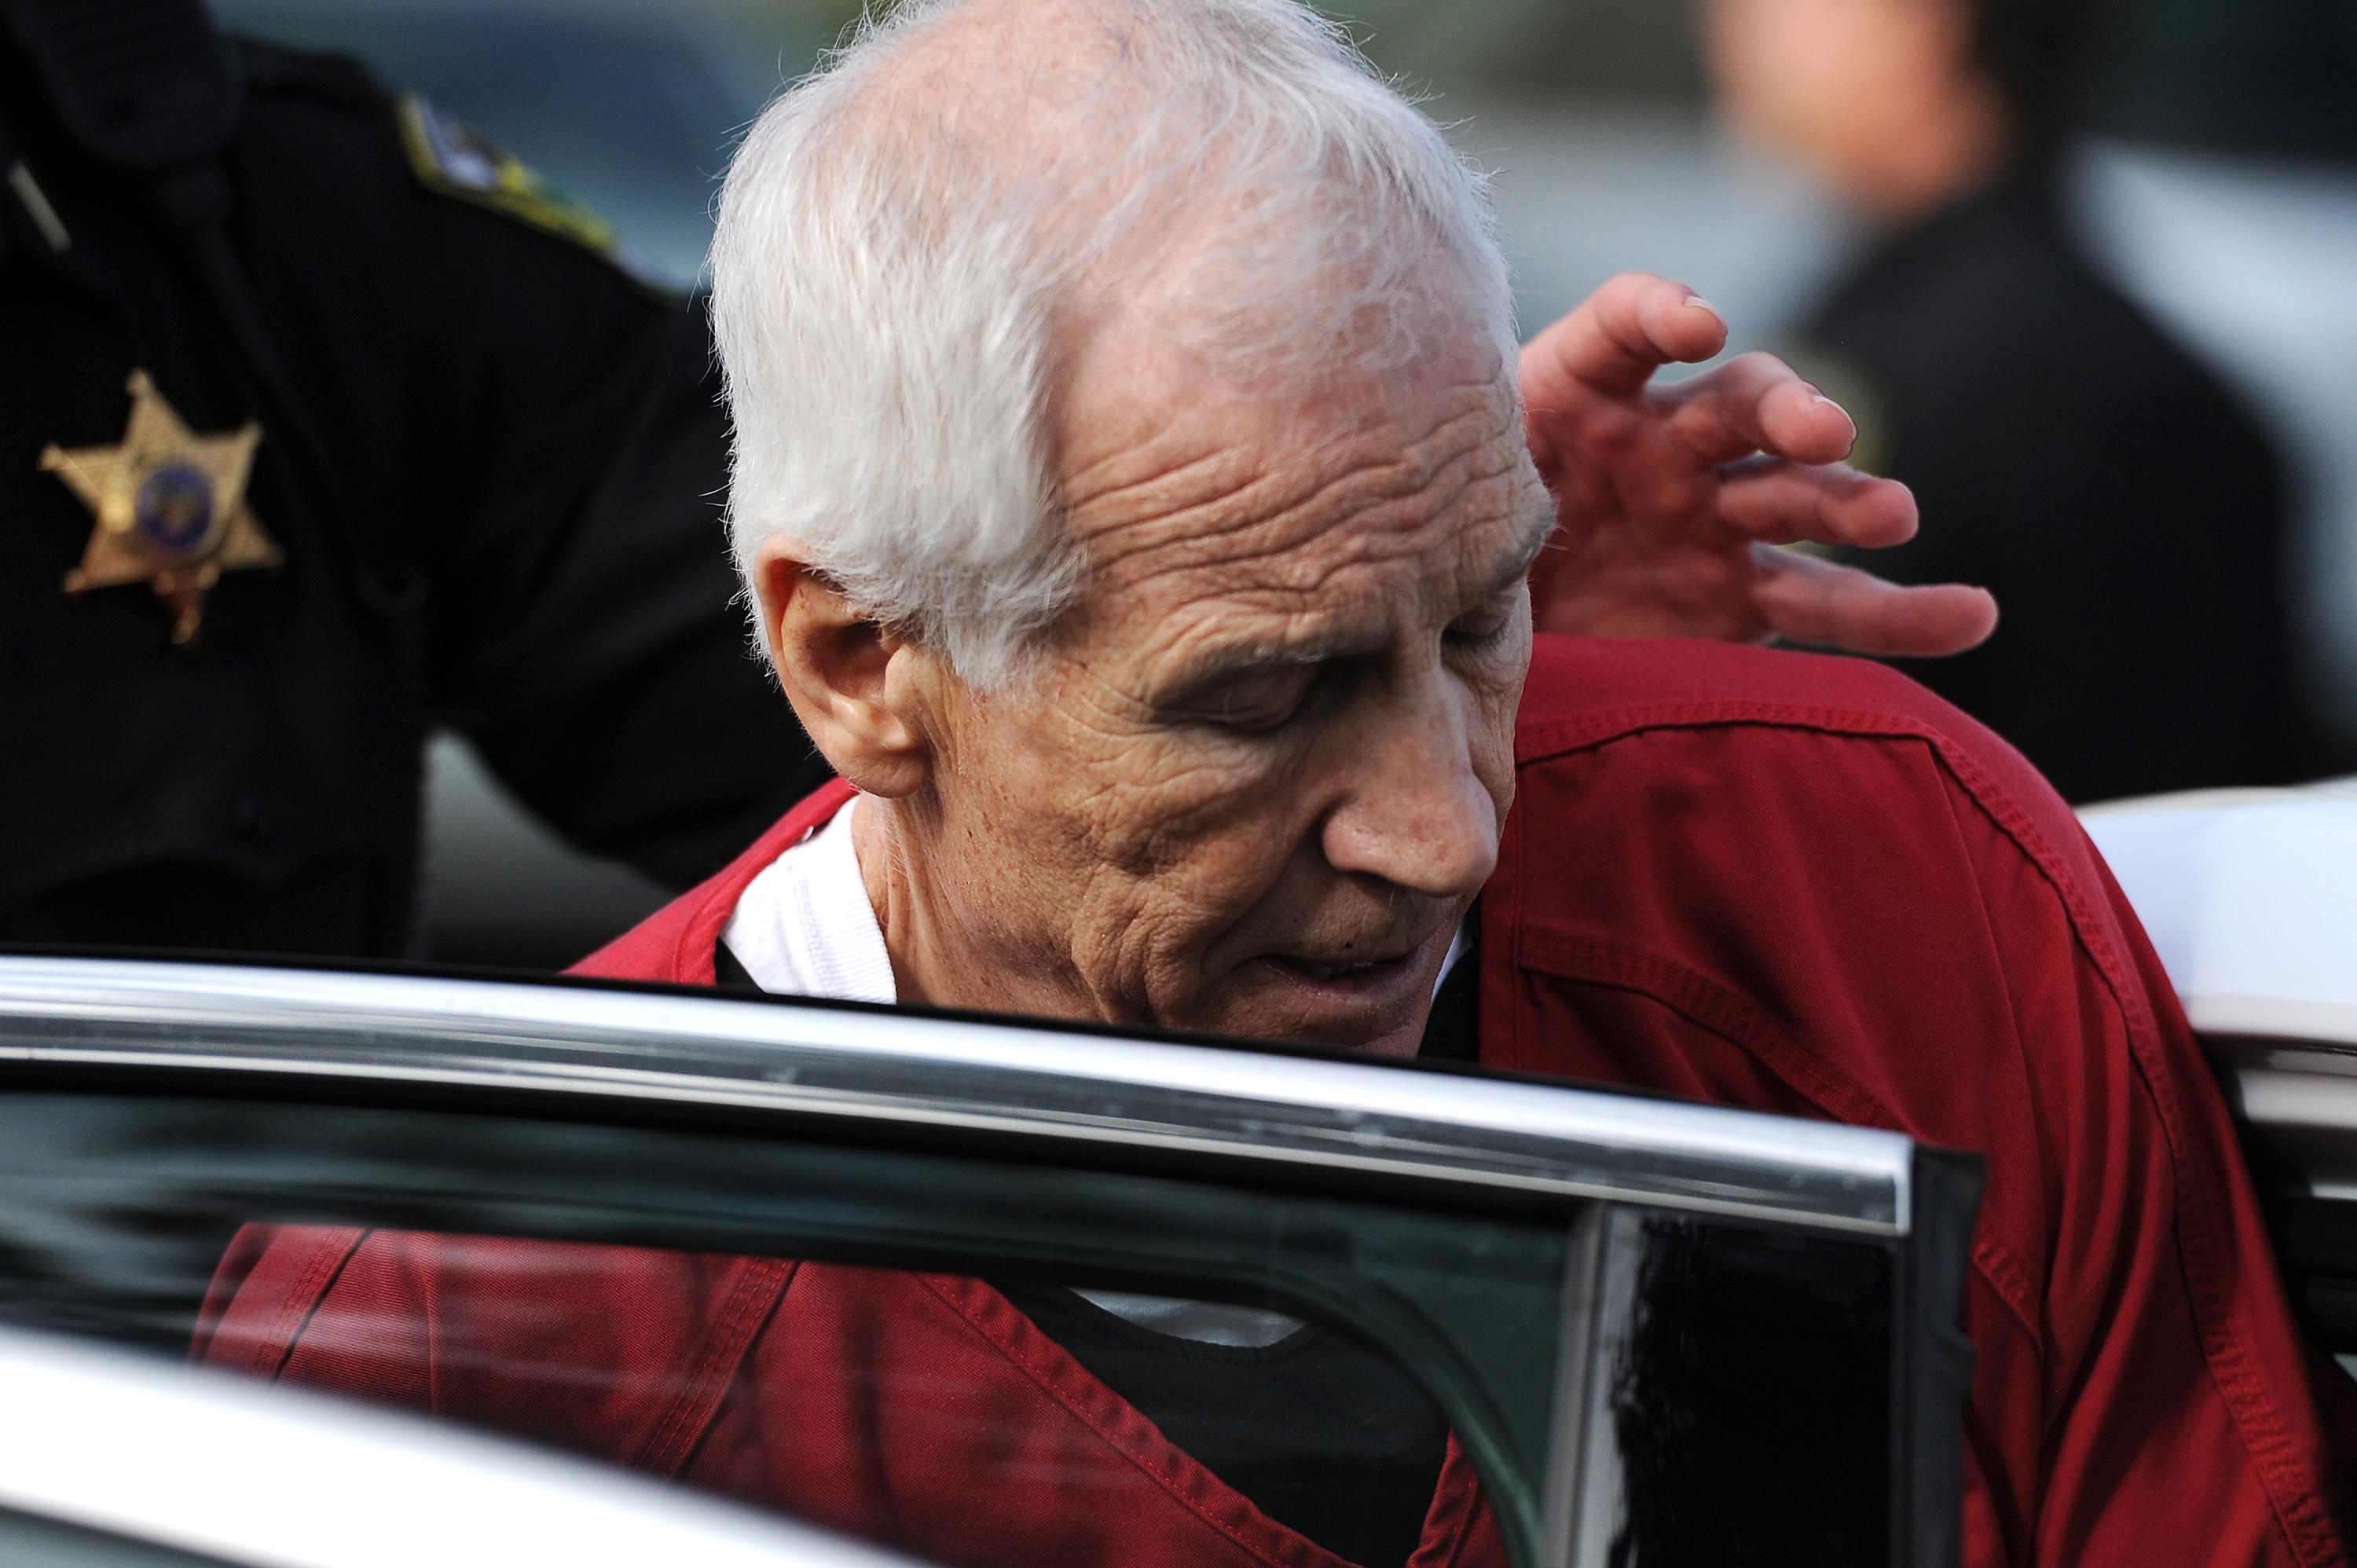 Jerry Sandusky leaves the Centre County Courthouse after his sentencing hearing. (Getty Images)